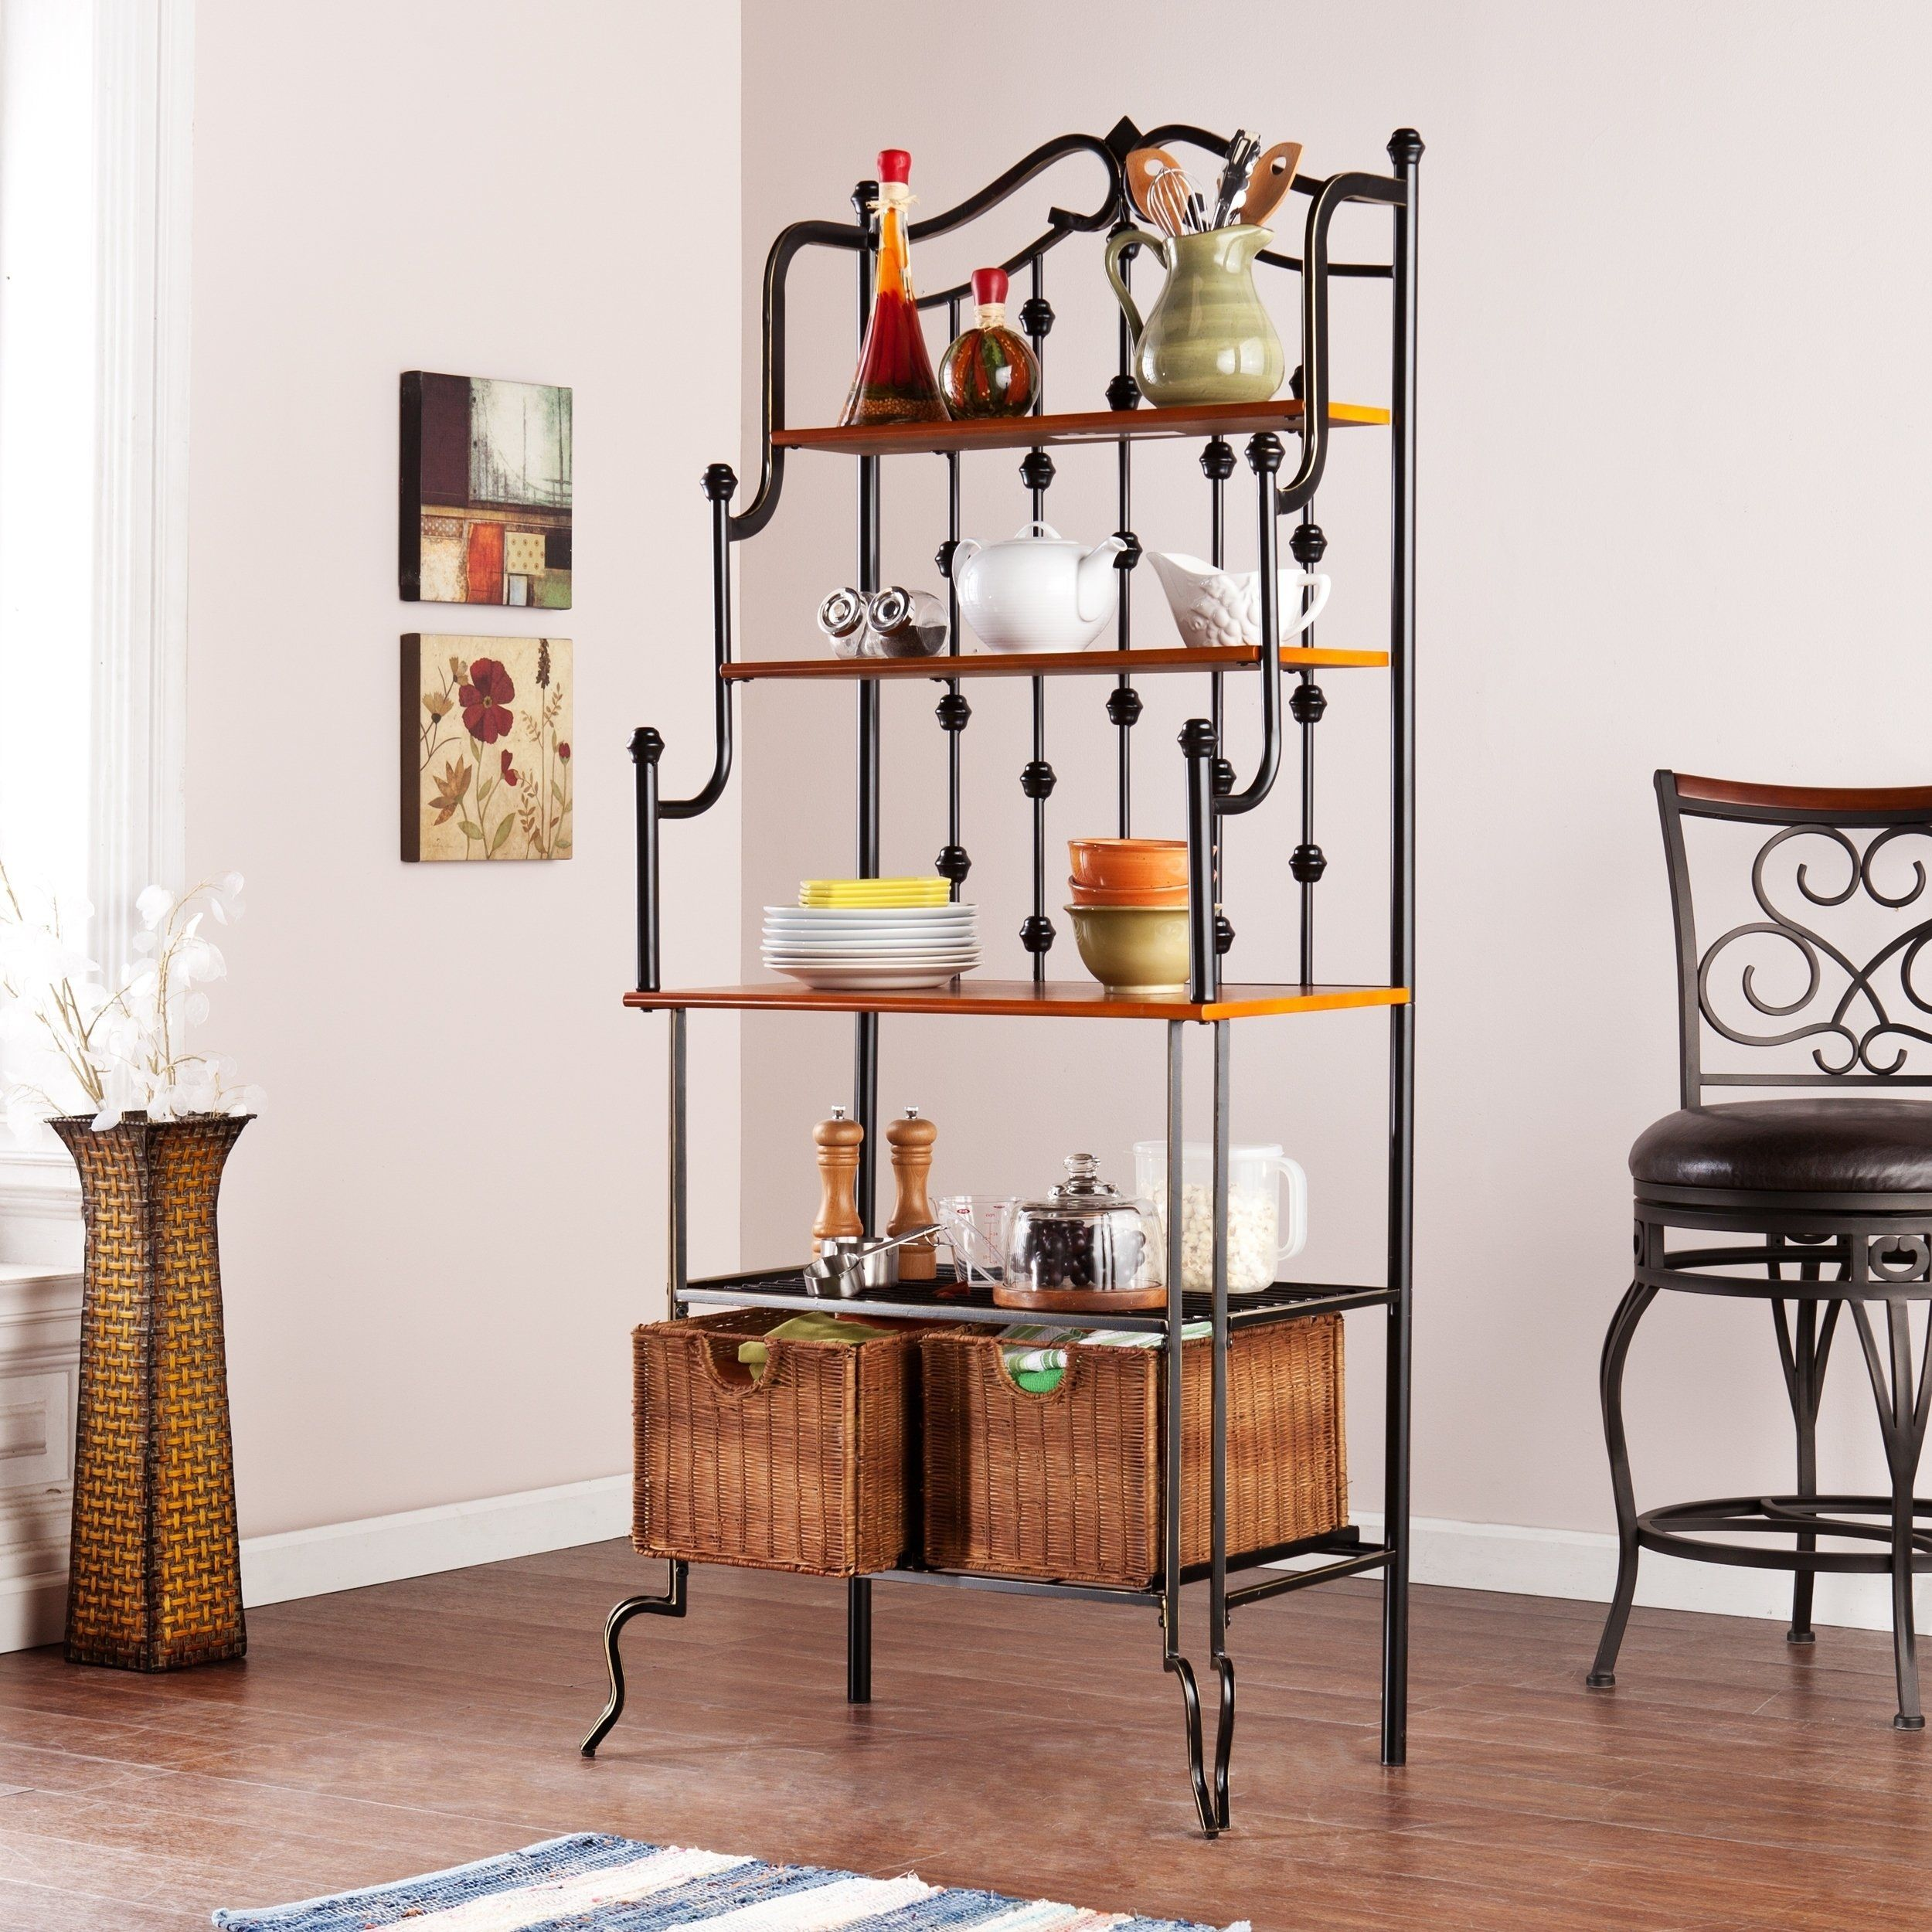 Elegant And Beautiful This Unique Black Frame Saint Pierre Baker S Rack From Sei Is A Blend Of Form And Function